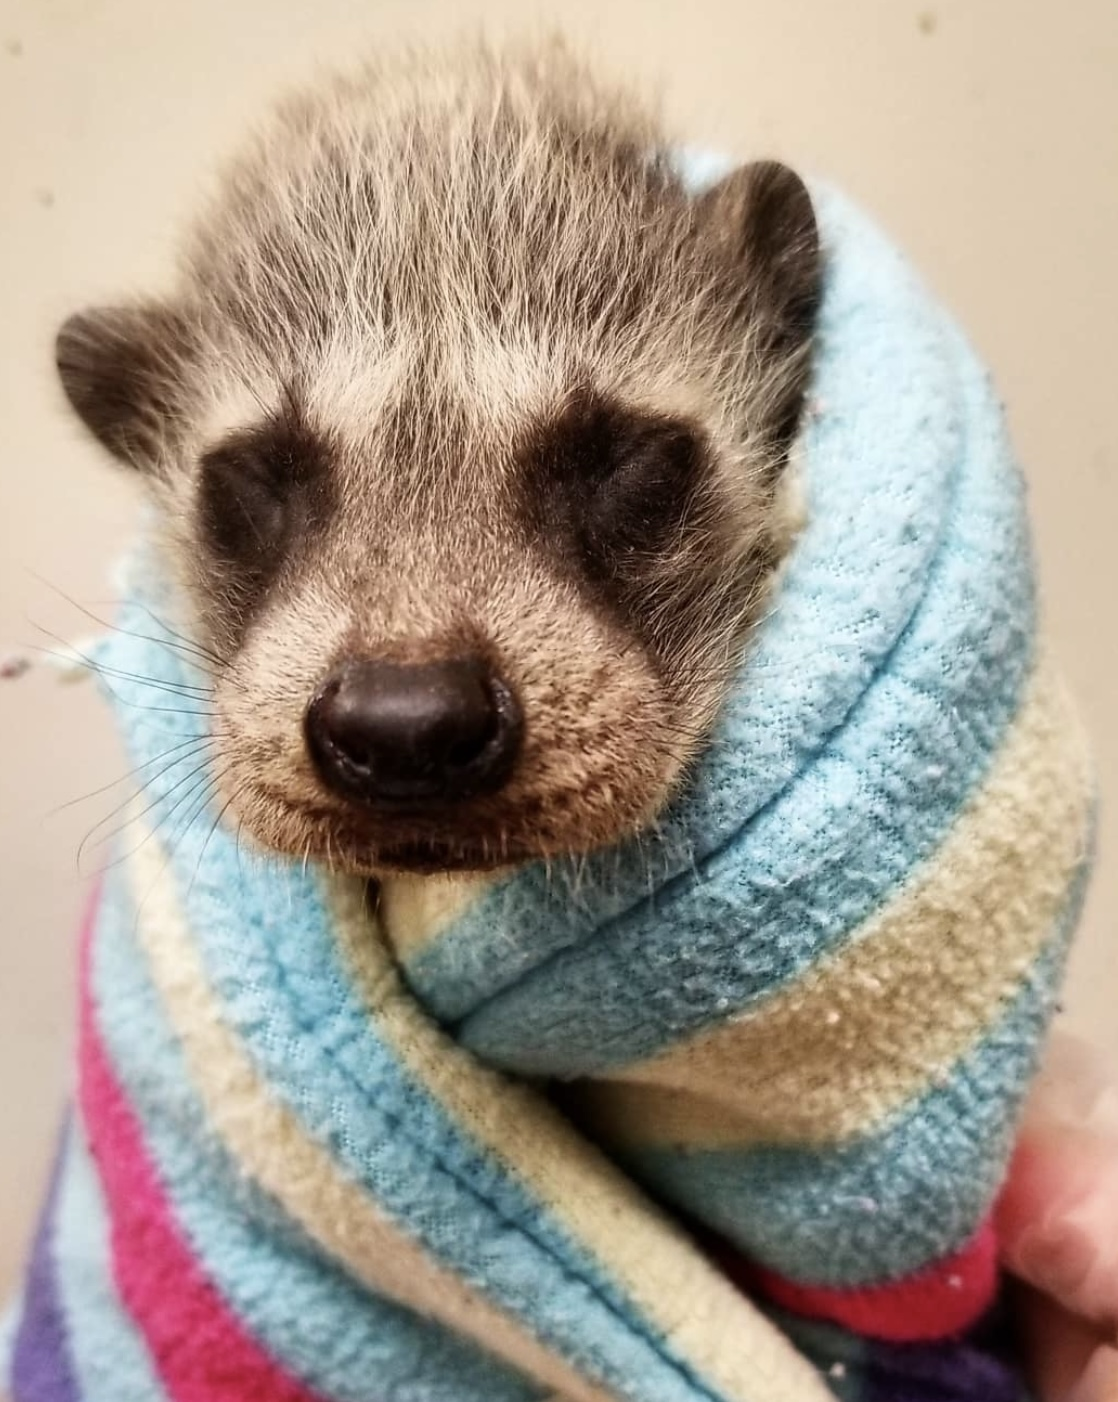 A baby raccoon wrapped in a fleece blanket to stay warm.